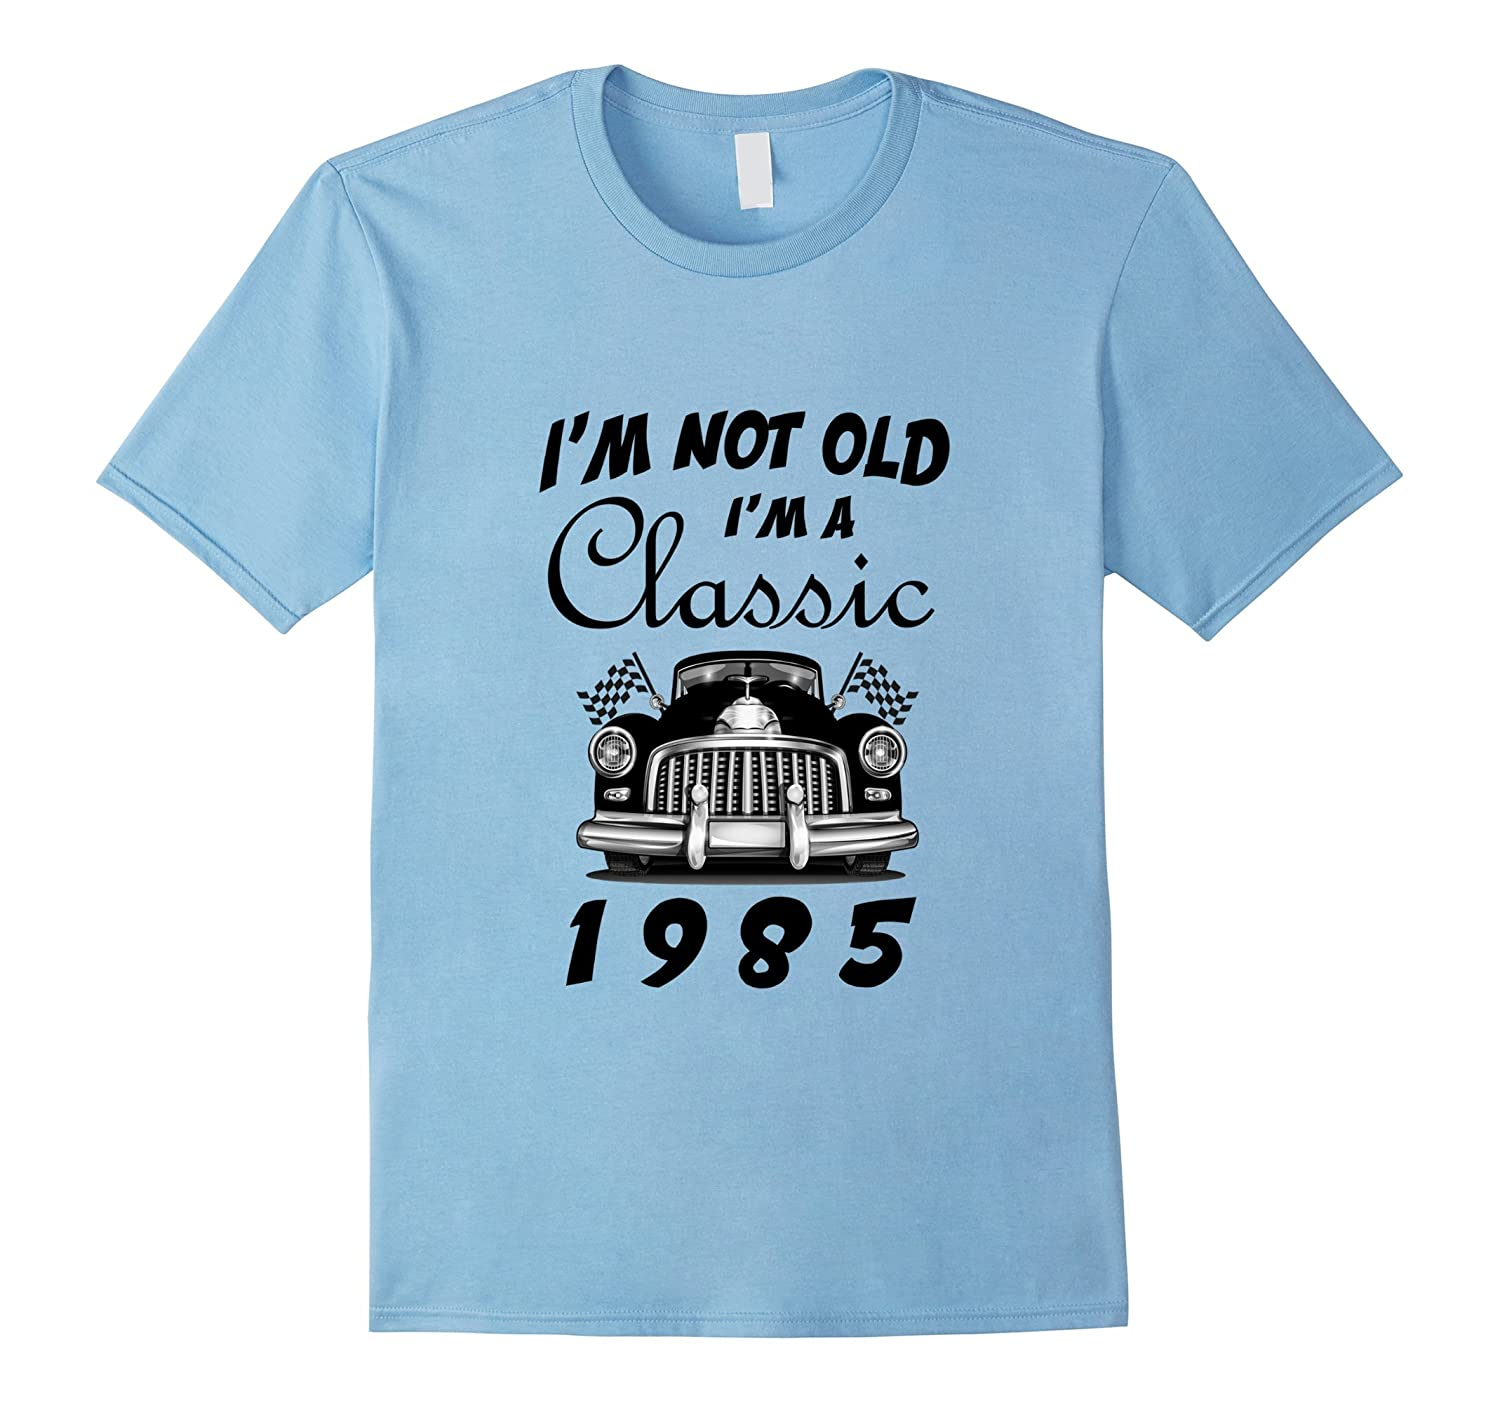 I M Not Old I M A Classic Car T Shirt Cool Car Shirts Cl